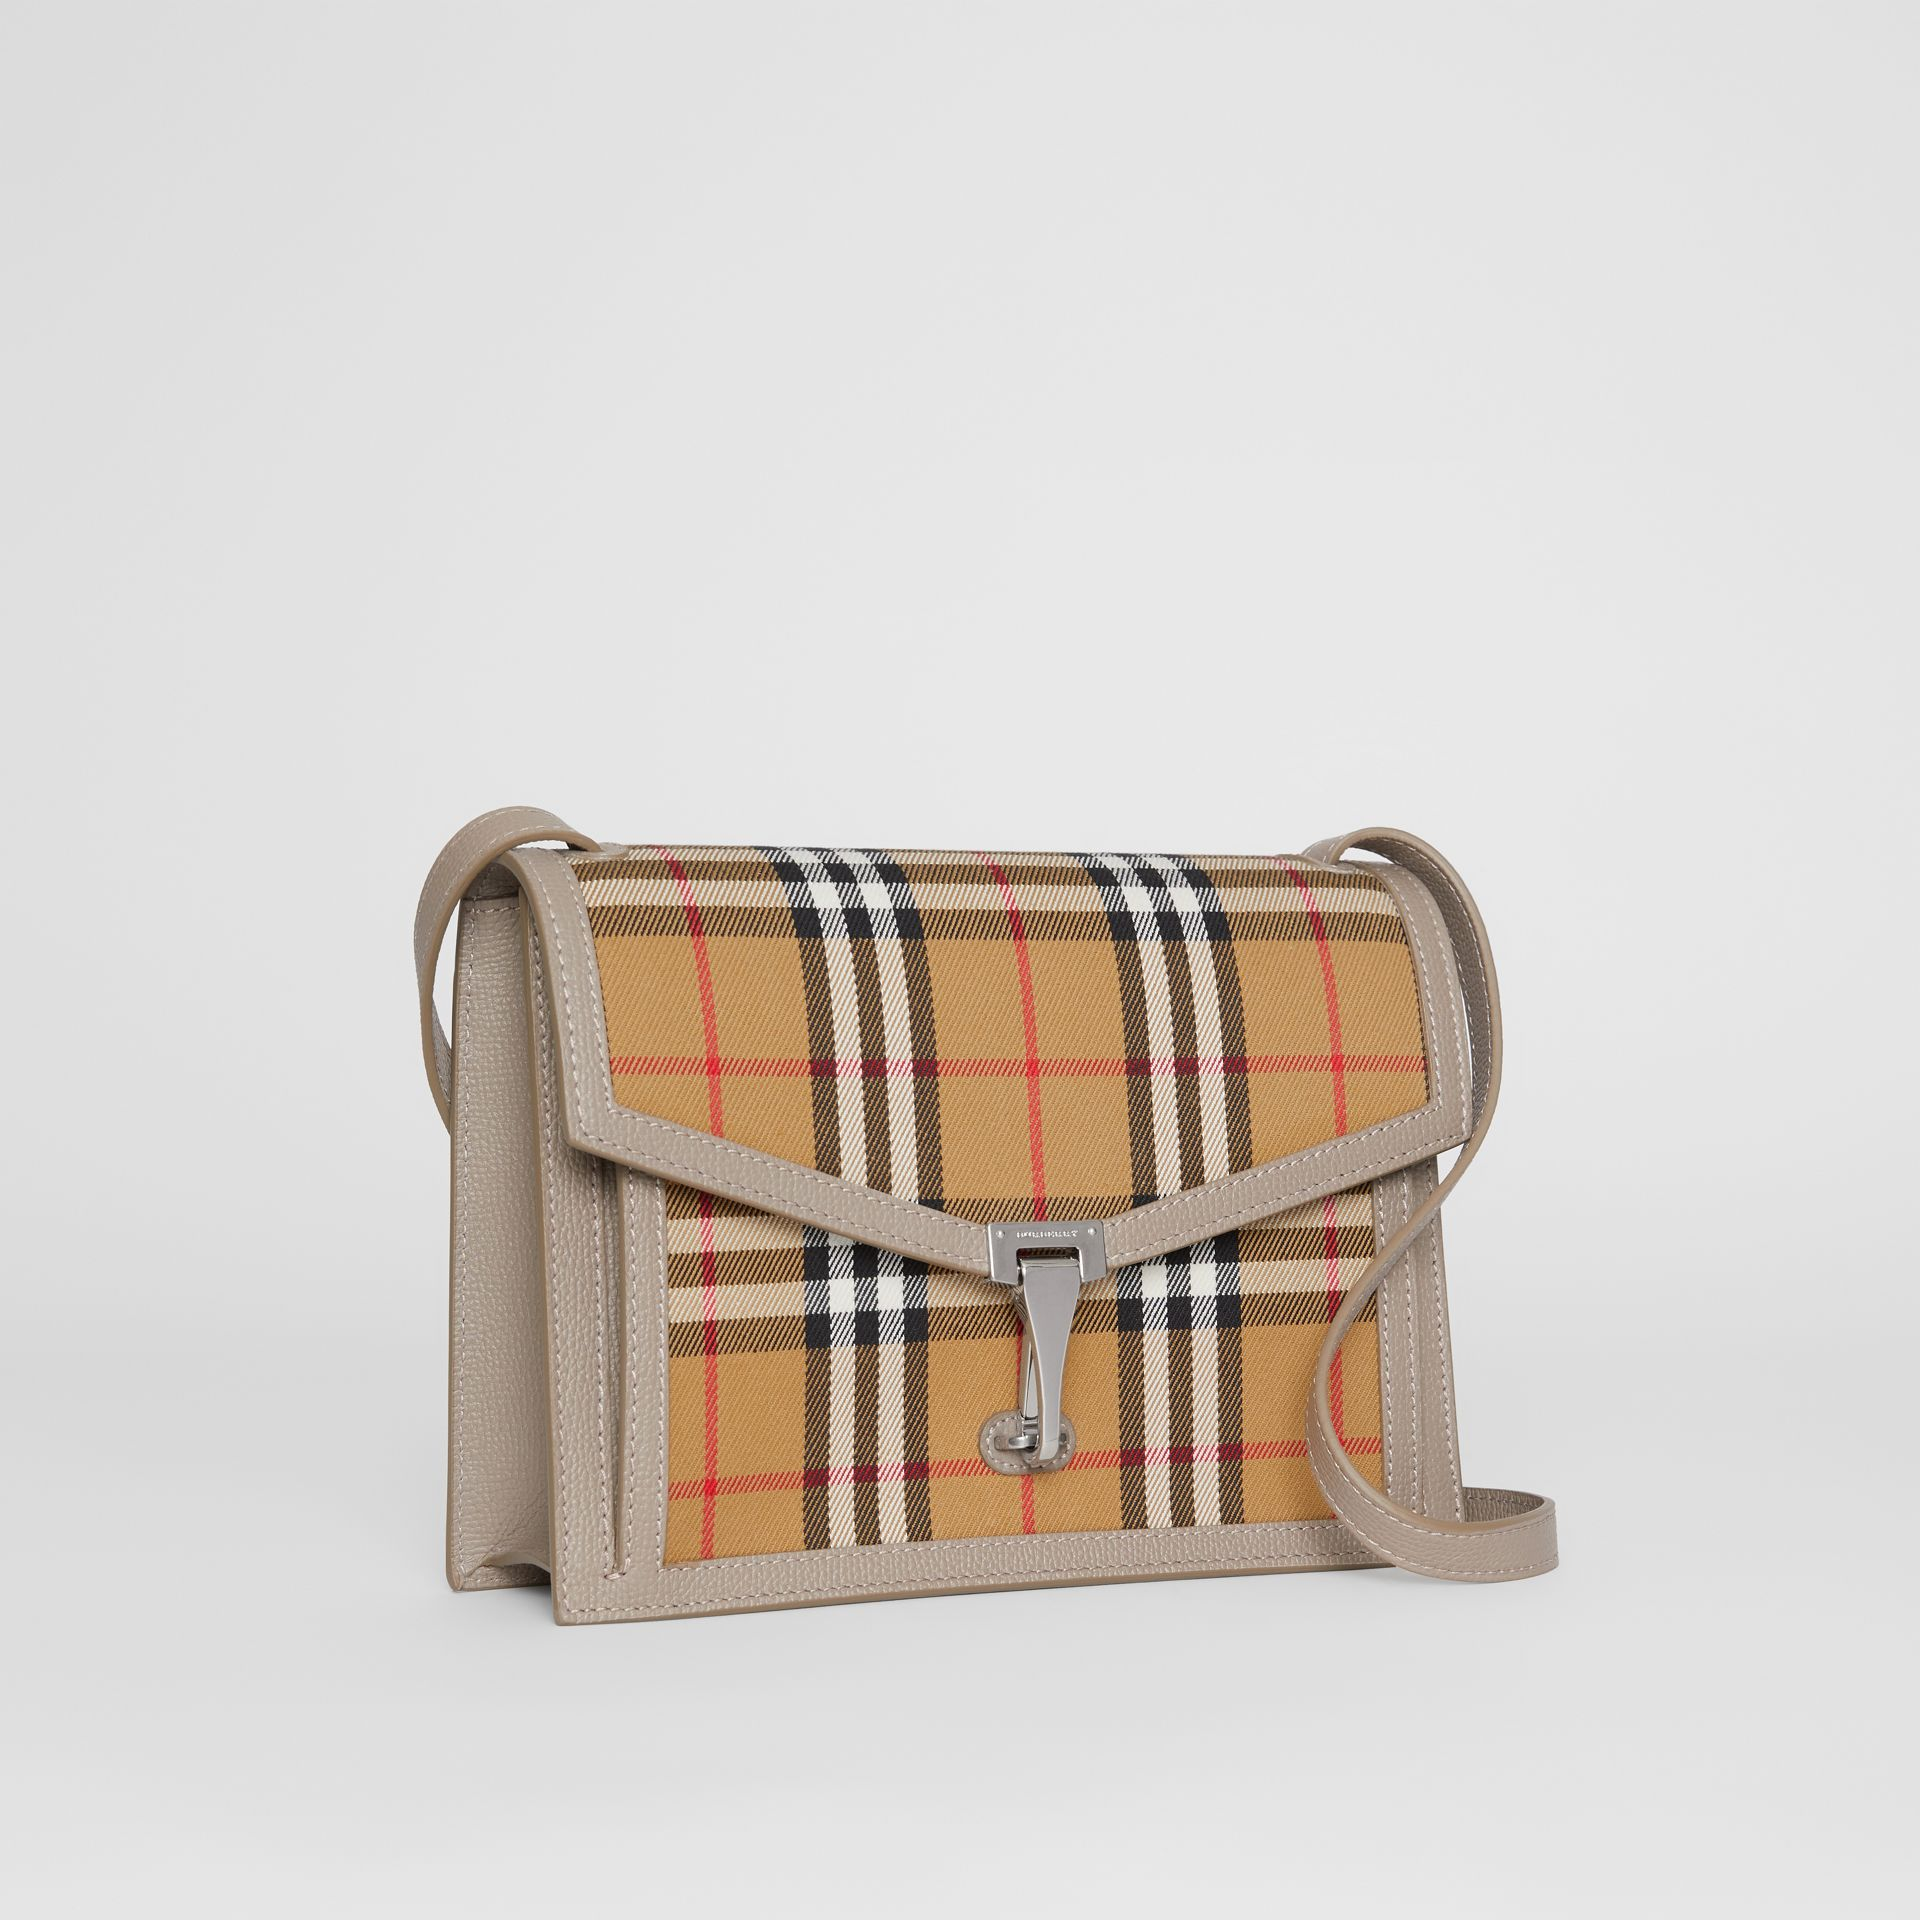 Small Vintage Check and Leather Crossbody Bag in Taupe Brown - Women | Burberry Australia - gallery image 6